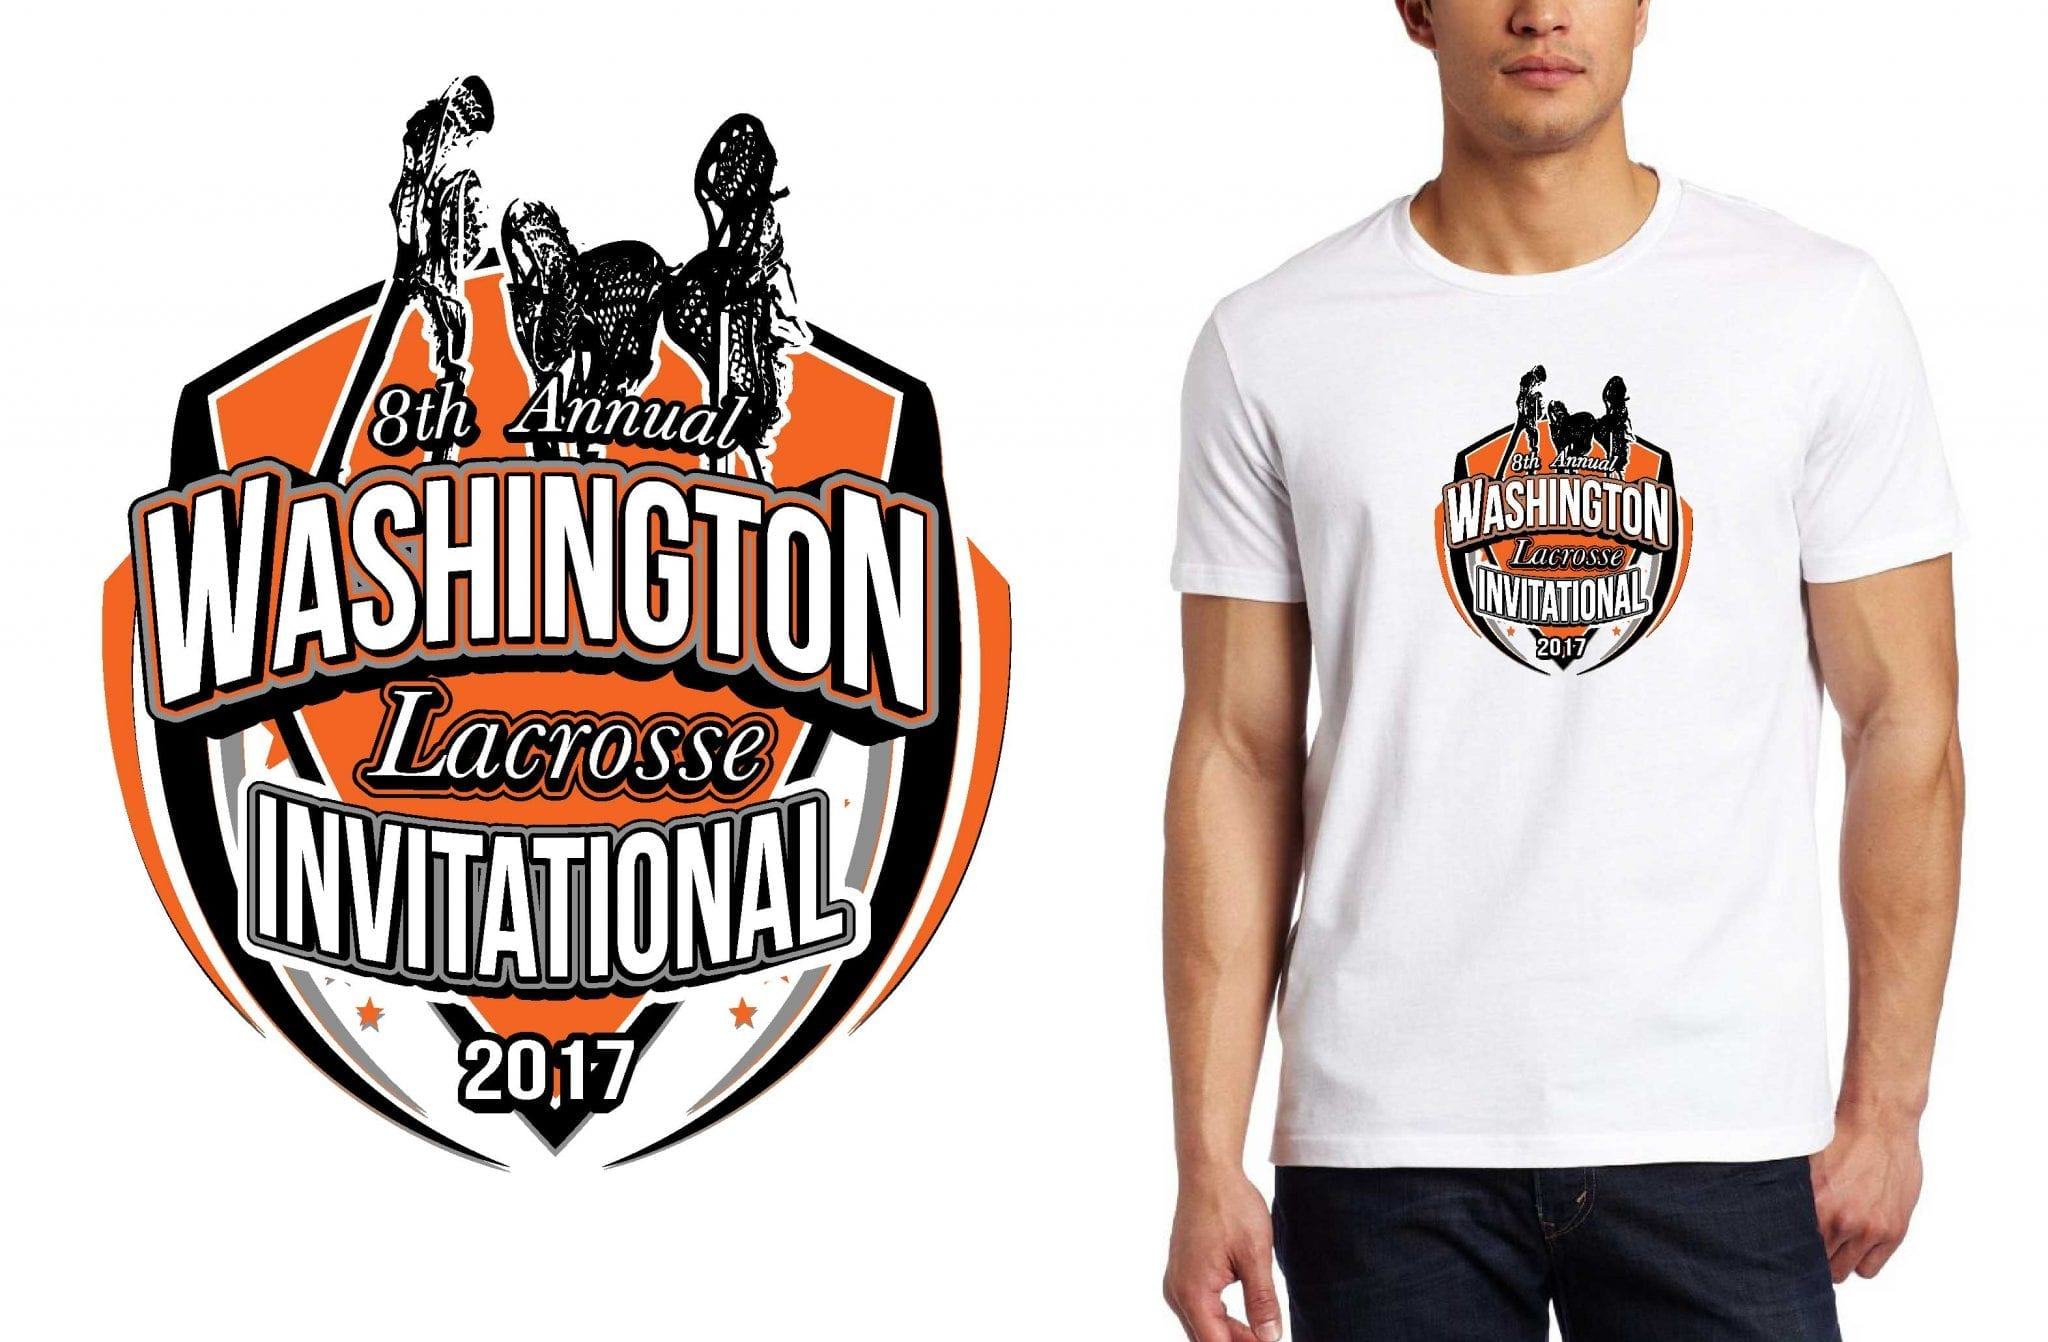 LOGO for 8th-Annual-Washington-Lacrosse-Invitational T-SHIRT UrArtStudio